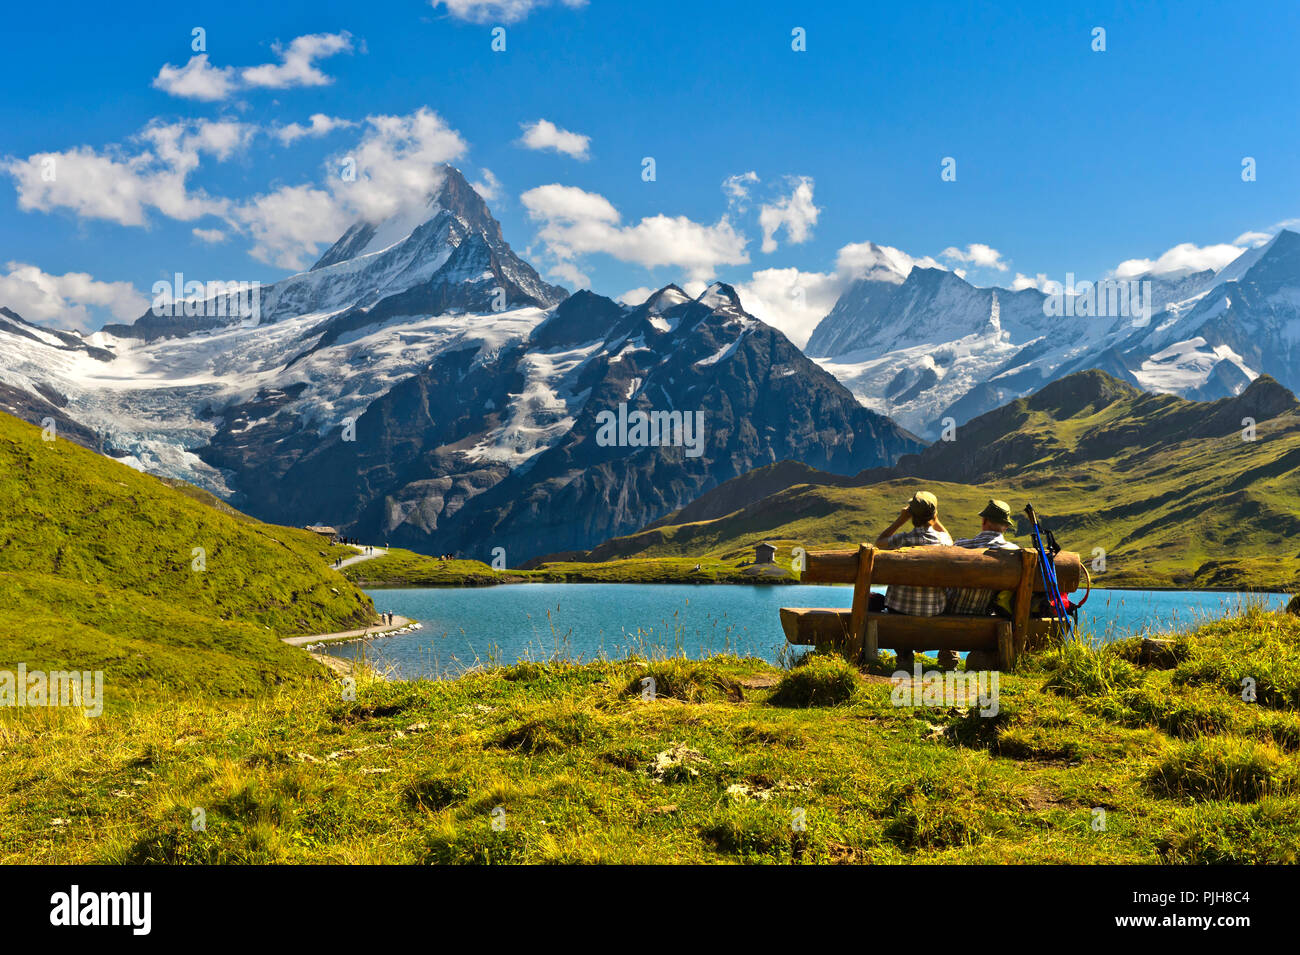 Hikers pausing on a wooden bench at lake Bachalpsee, behind the summits Schreckhorn and Finsteraarhorn, Grindelwald - Stock Image